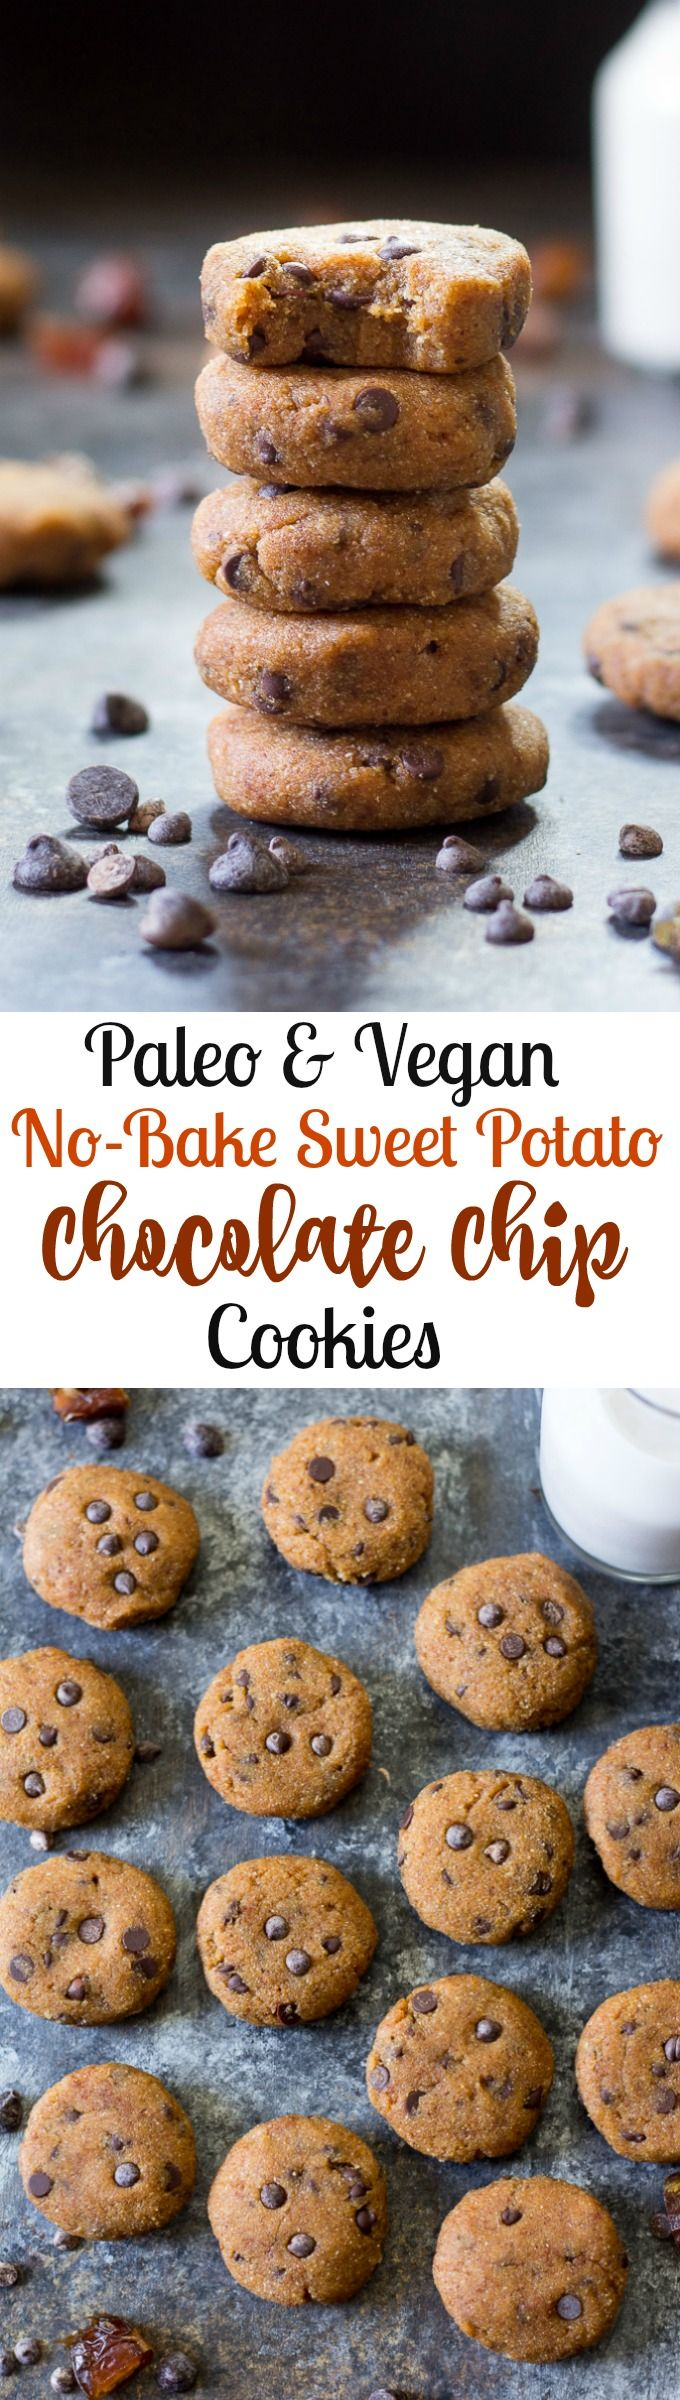 Paleo & Vegan sweet potato no bake chocolate chip cookies that are sweetened with dates and taste like the perfect edible cookie dough!